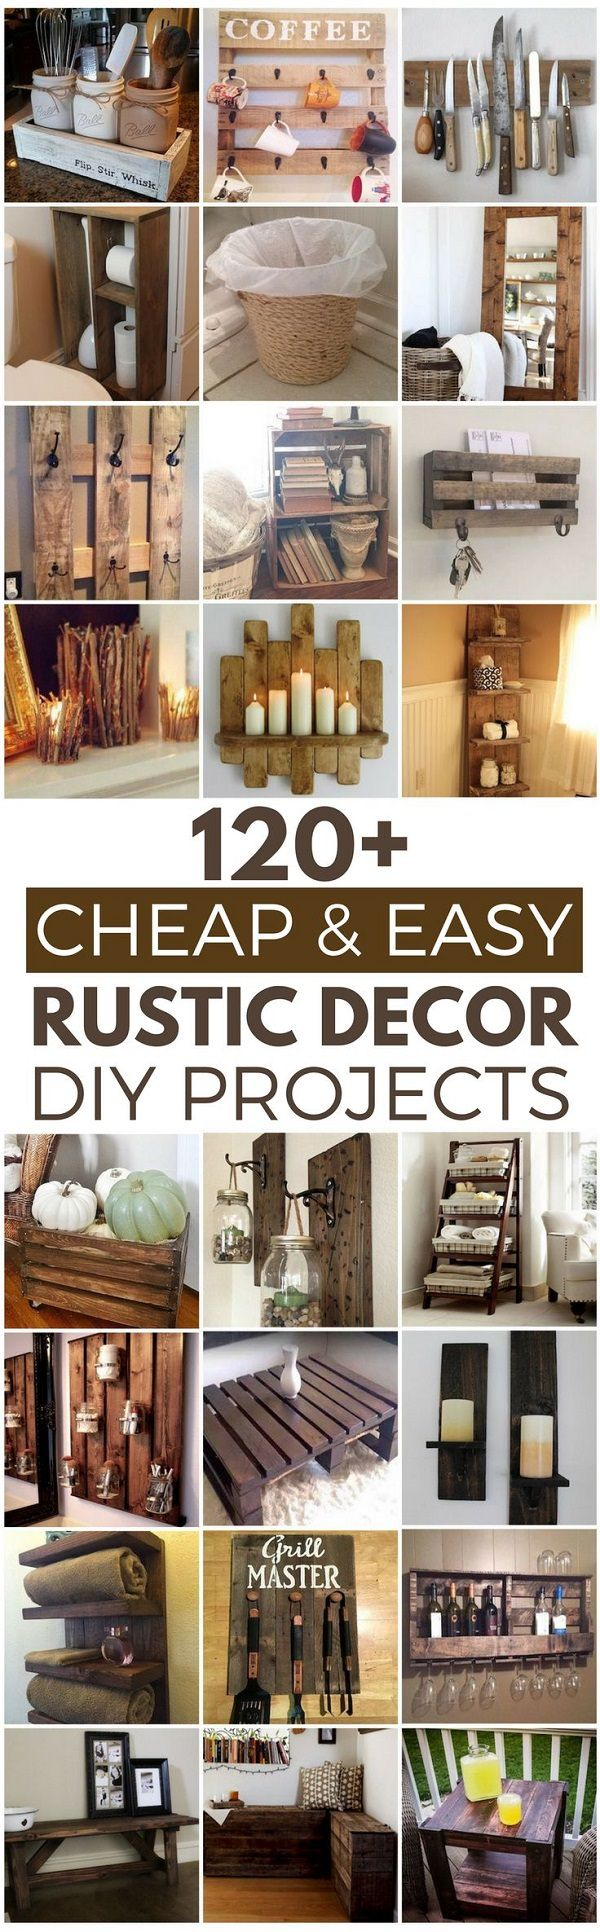 182 best Home Décor on a Budget images on Pinterest | Tuesday ...